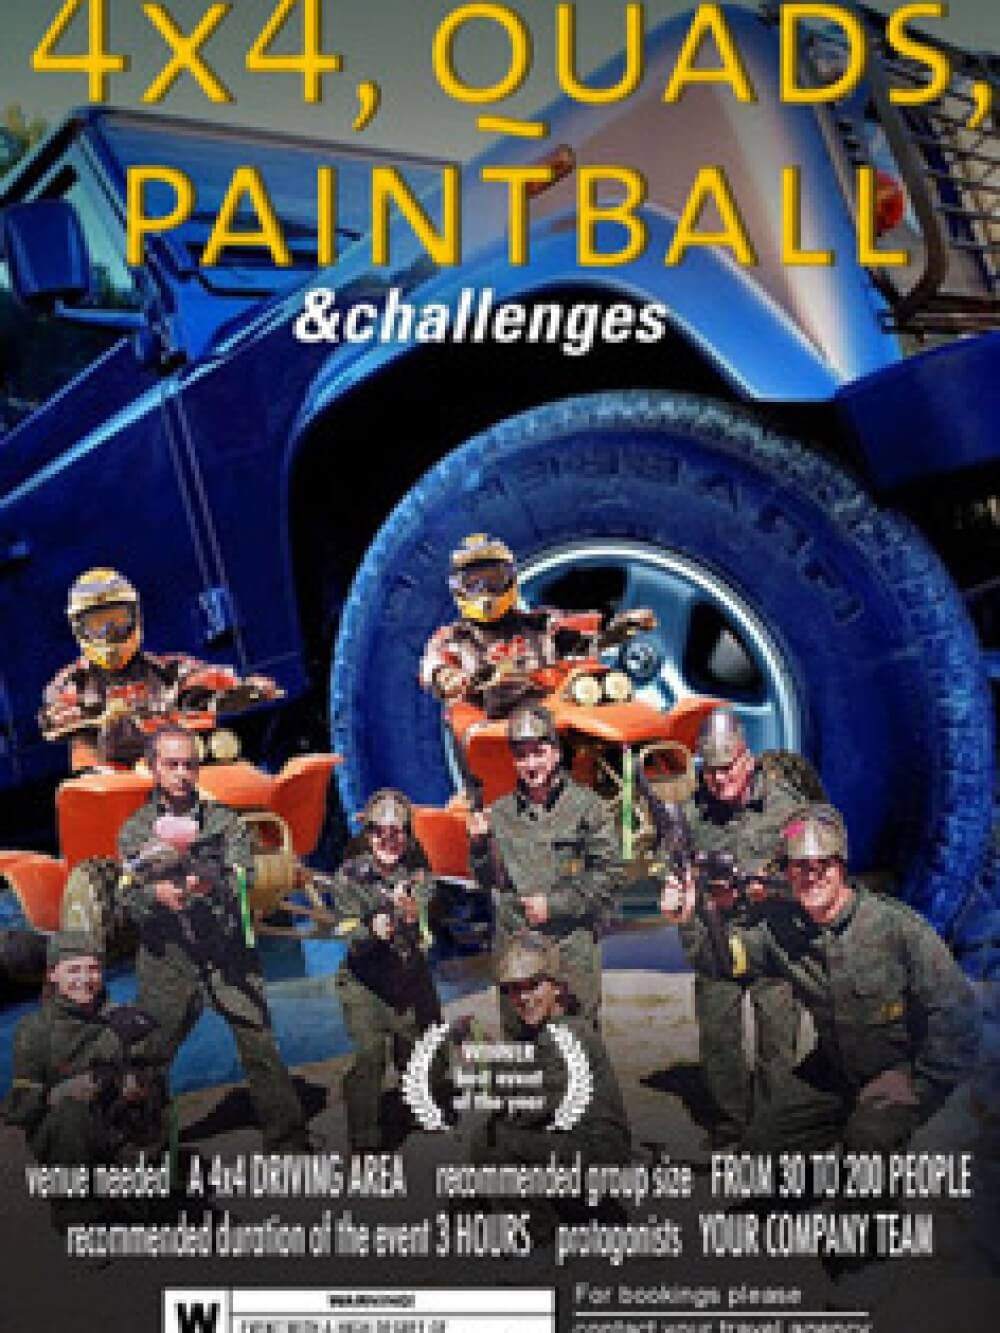 4x4_quads_paintball_challenges_vertical_web